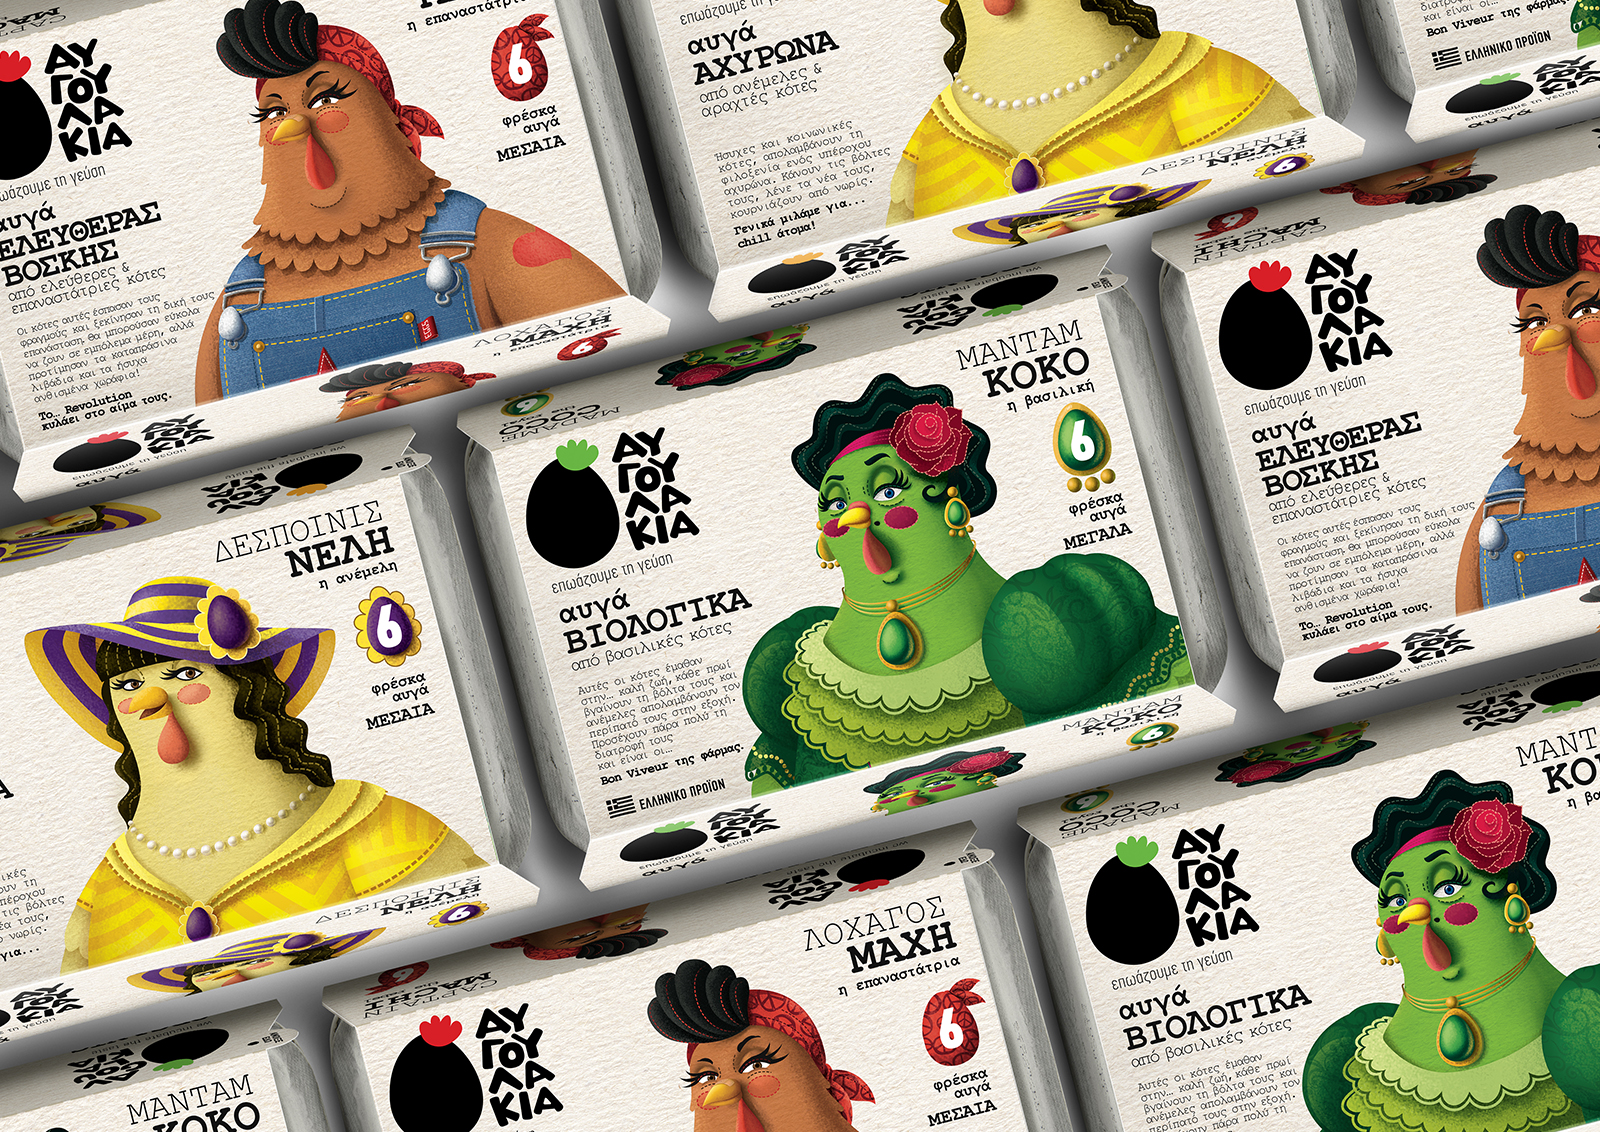 Avgoulakia Eggs Packaging by Antonia Skaraki